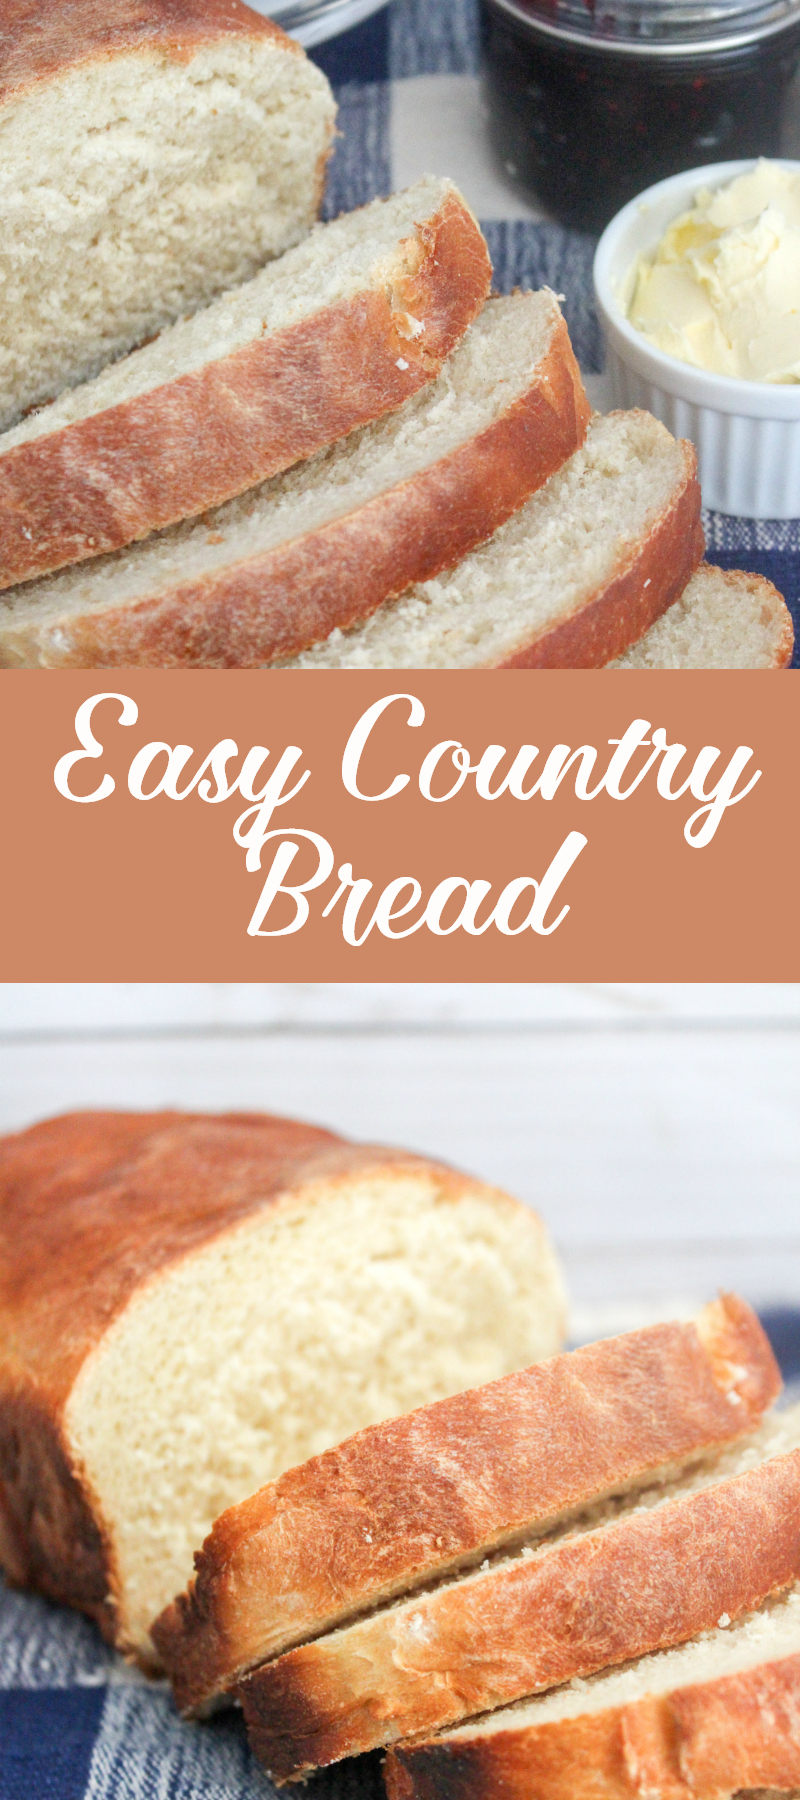 White Country bread recipe. Your family will love this easy country bread that is so much better than store bought. Gotta love homemade bread! #bread #breadrecipes #easyrecipe #countrybread #whitebread